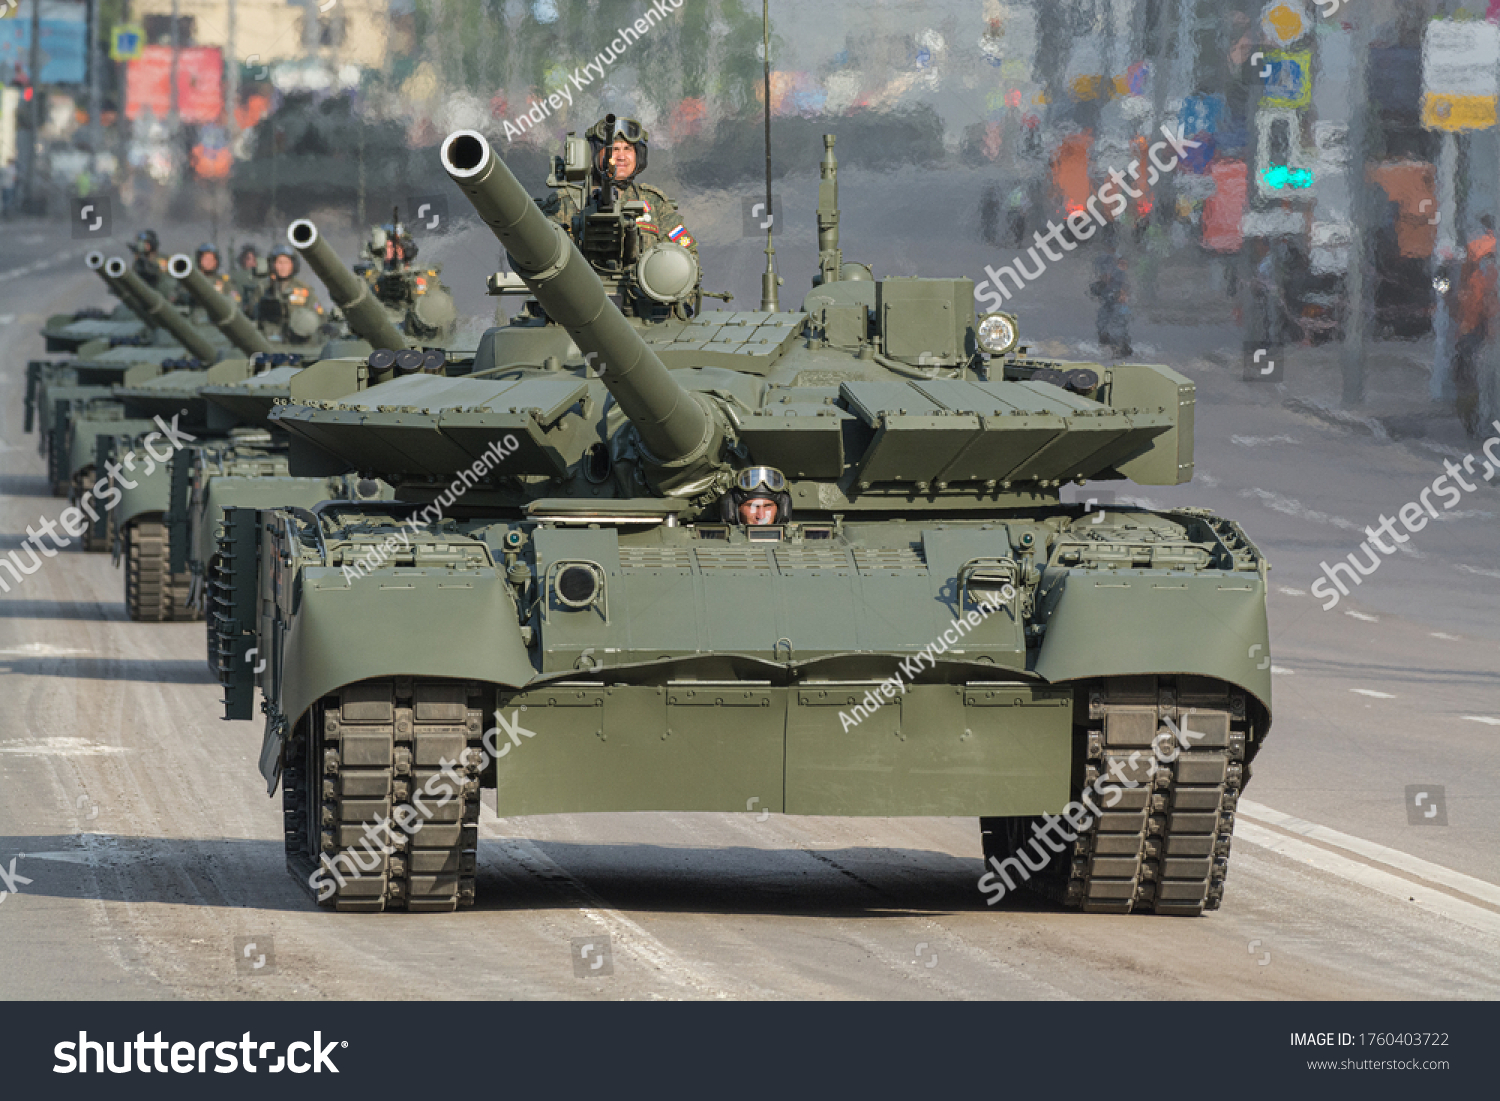 https://image.shutterstock.com/z/stock-photo-june-moscow-russia-the-t-bvm-tank-goes-to-red-square-to-participate-in-the-rehearsal-1760403722.jpg